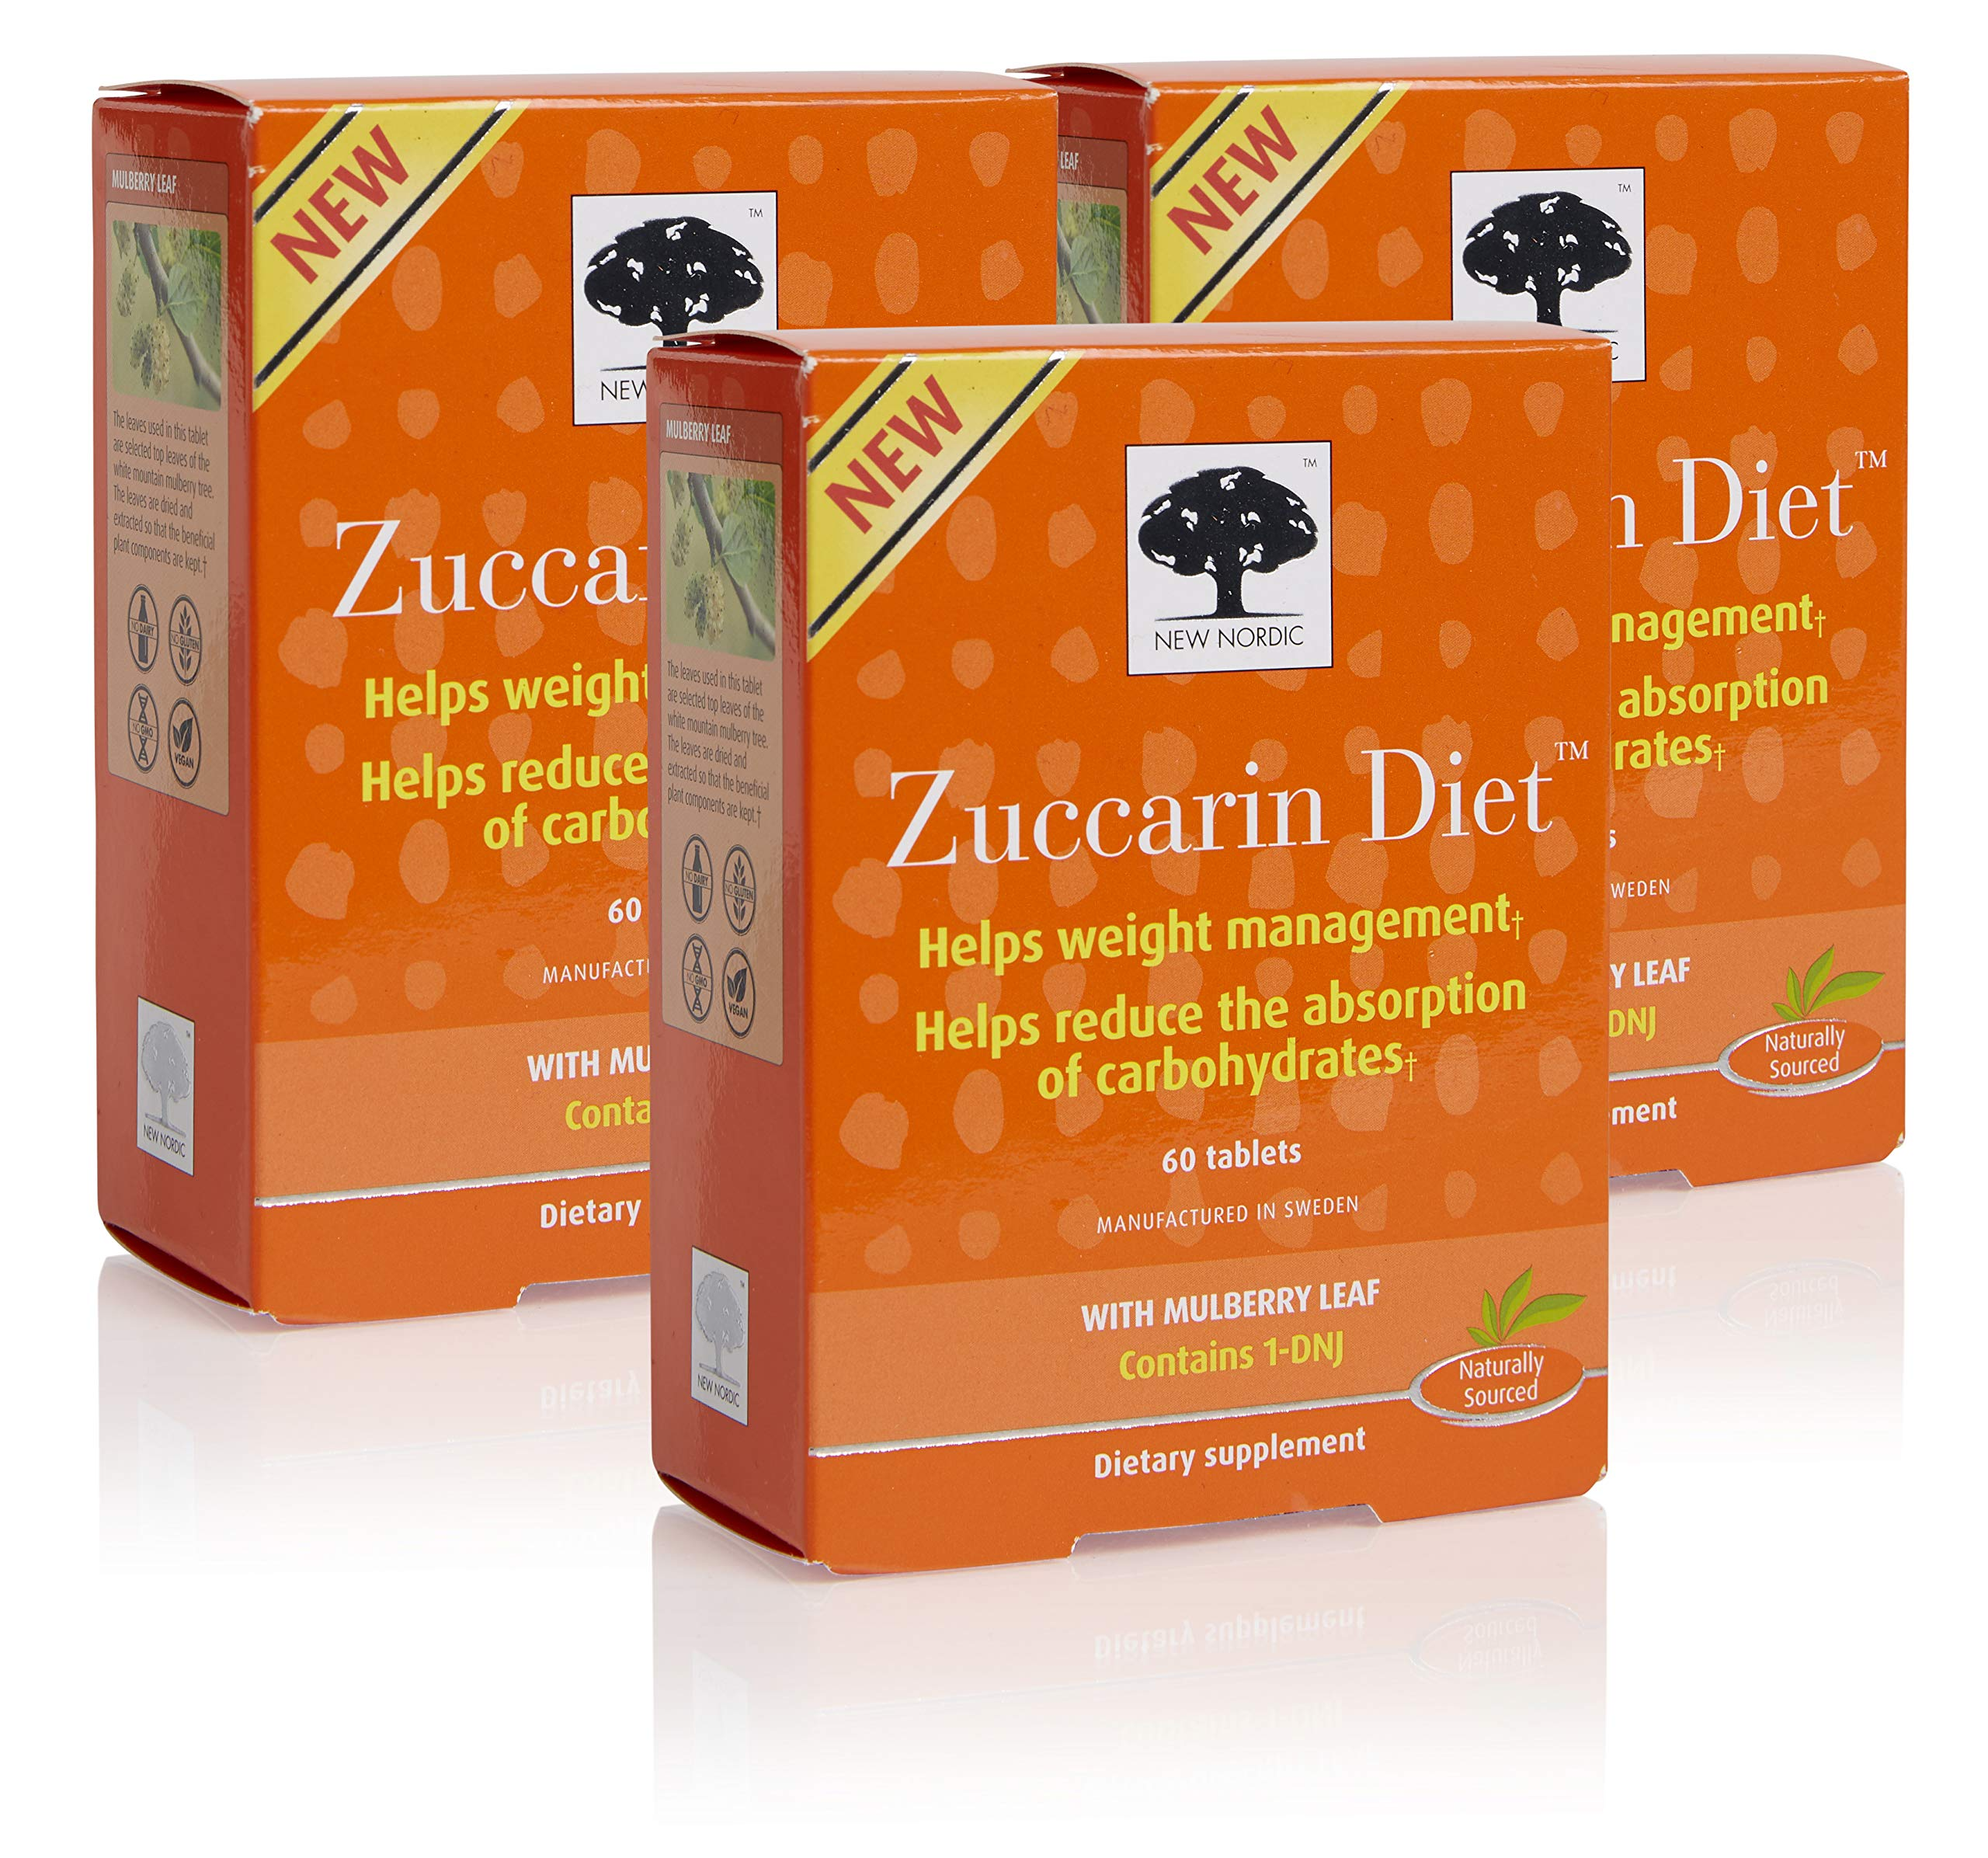 New Nordic Zuccarin Diet w/Mulberry Leaf, 60 Tablets (Pack of 3) by New Nordic